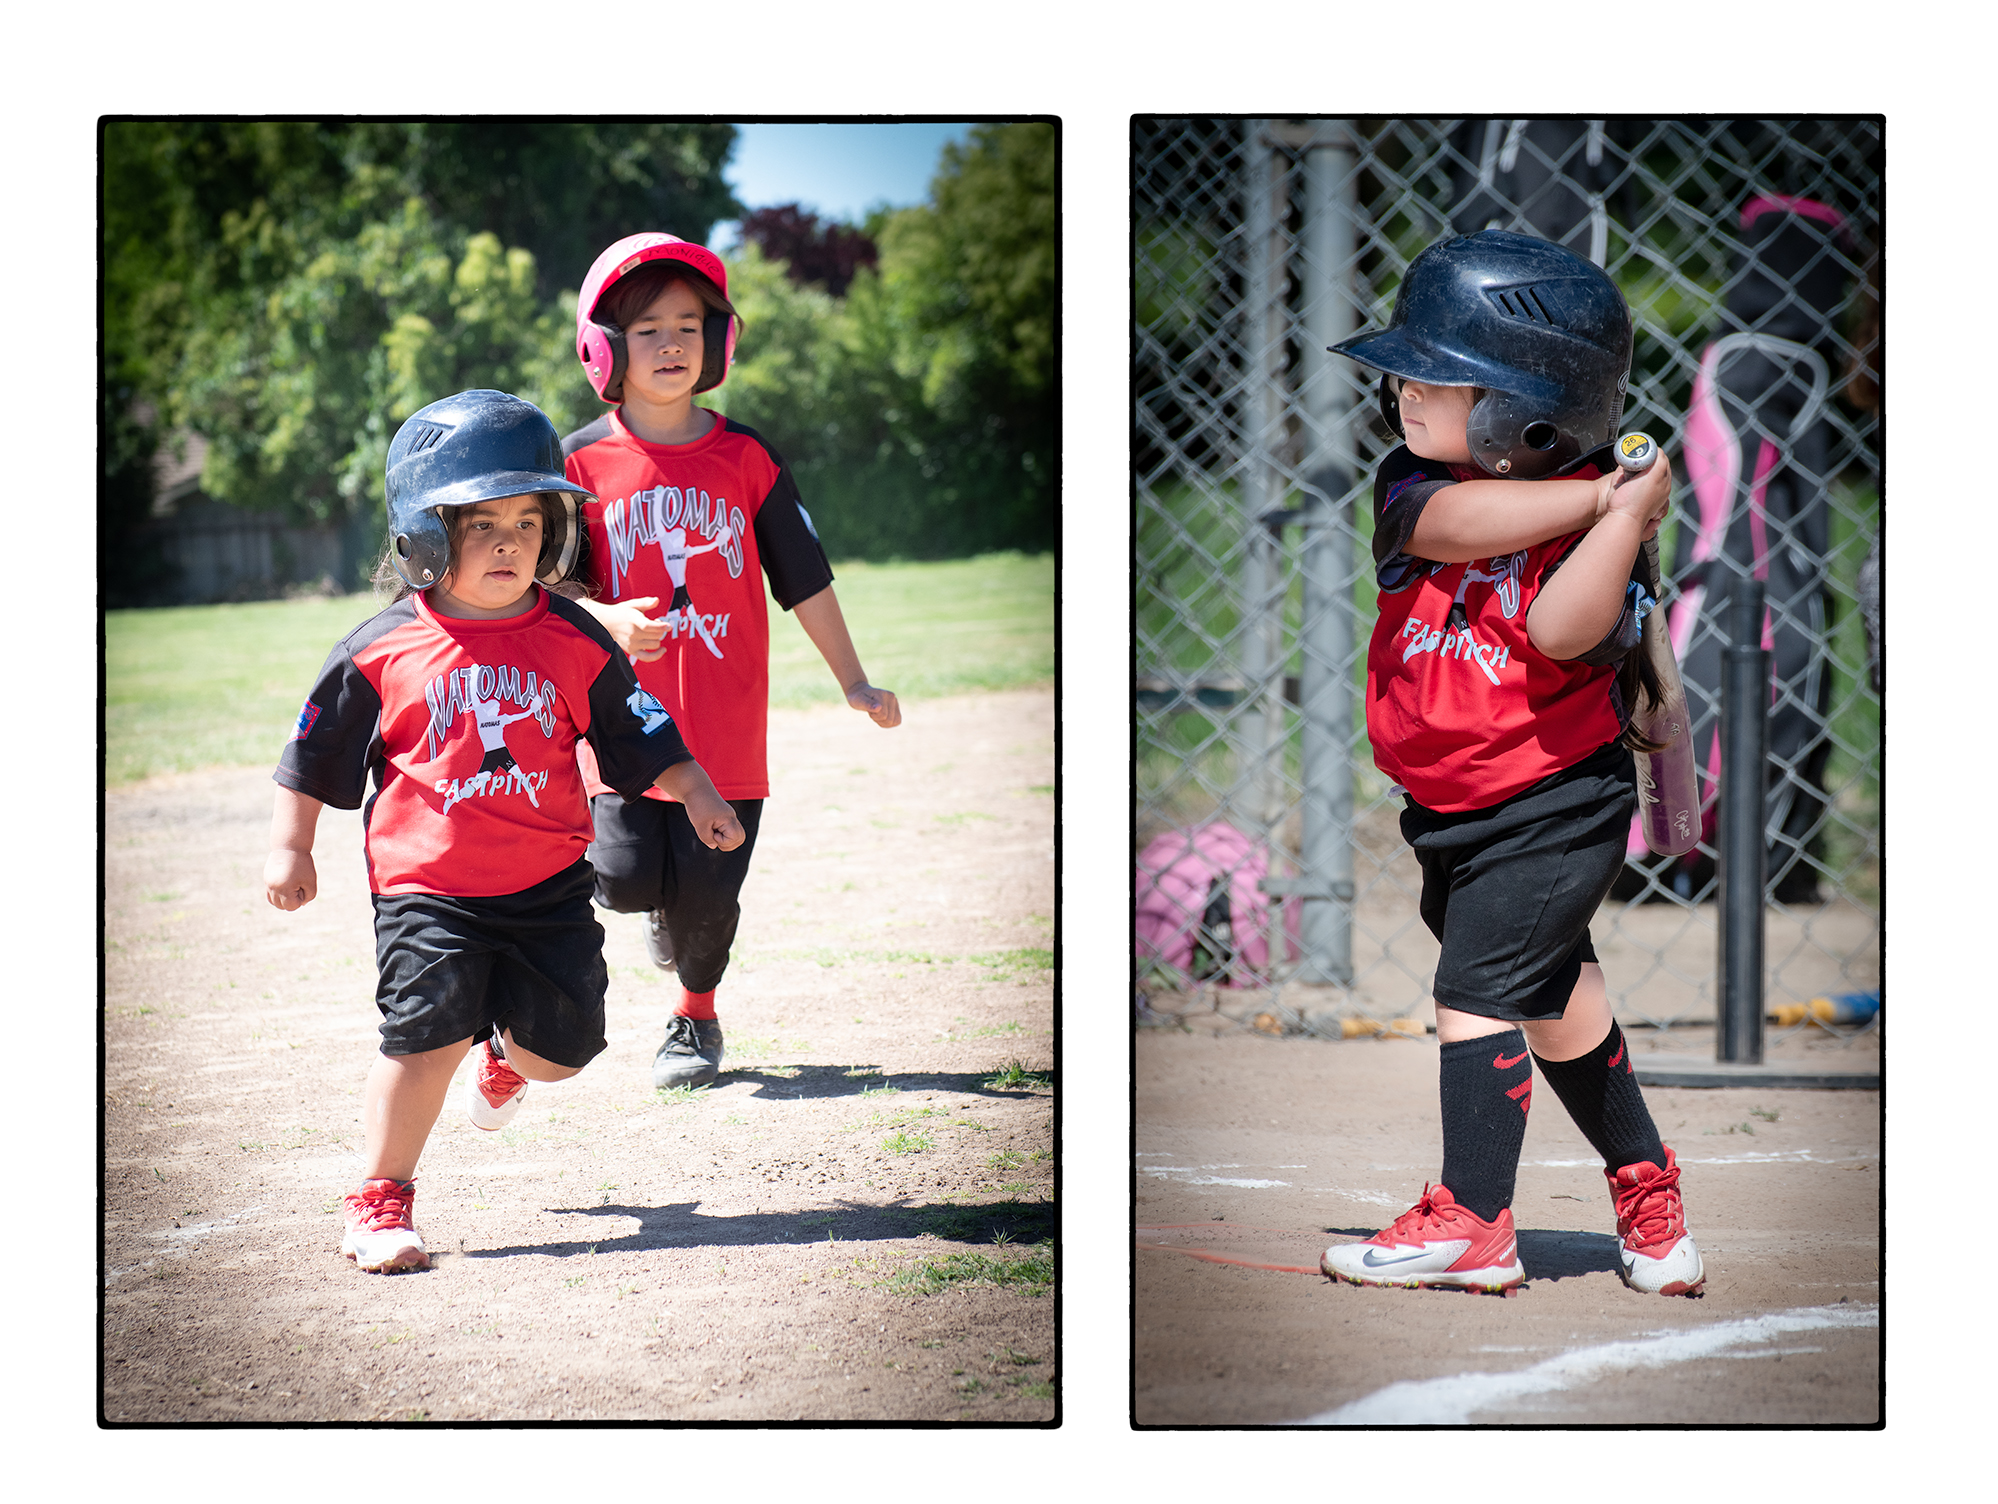 Pitcher for the Ladybugs On Base and At Bat